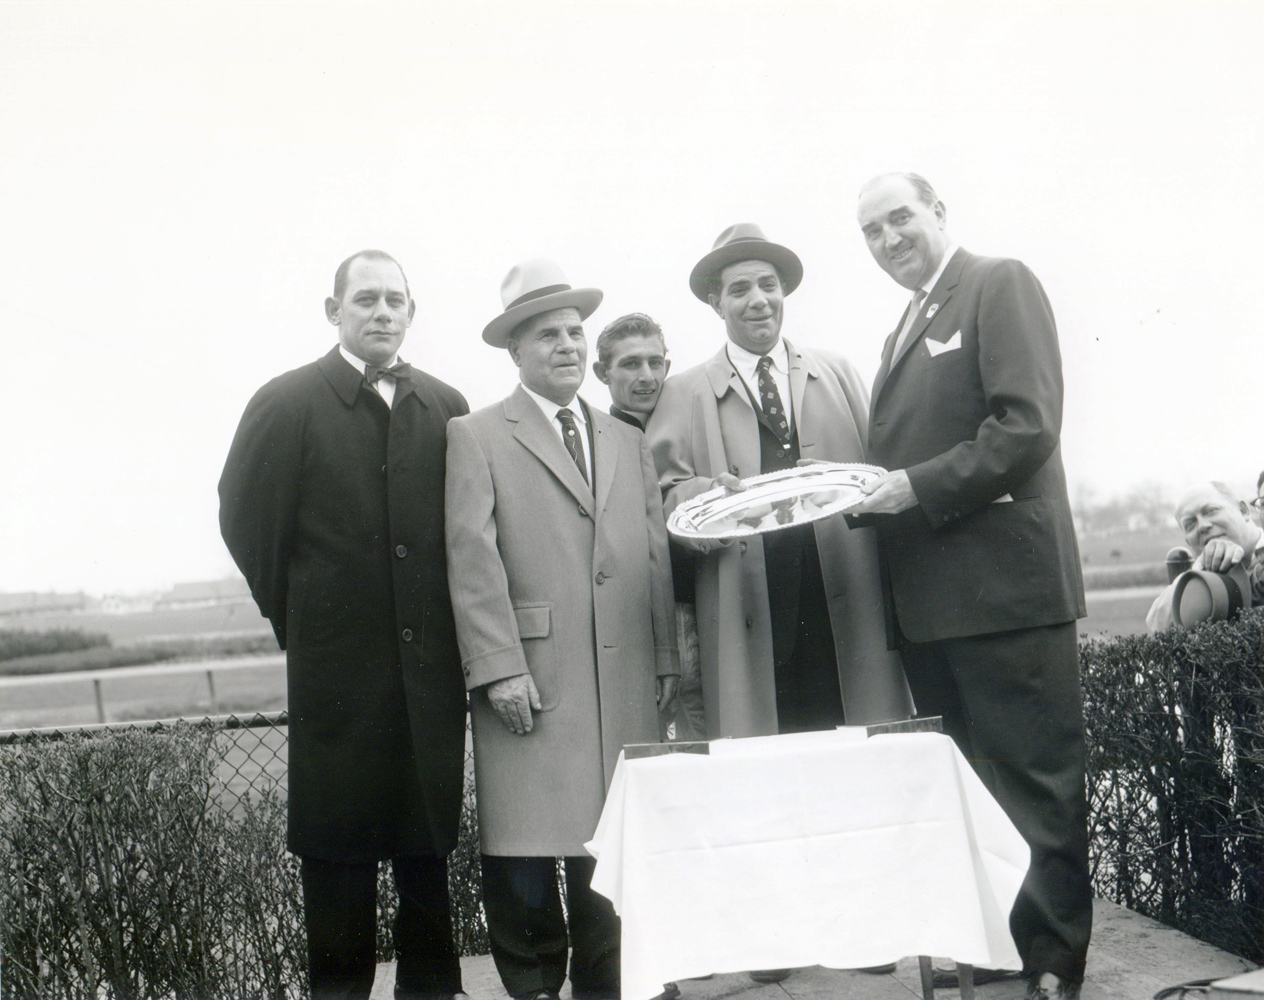 Frank Martin, Mr. Dolce, jockey Ray Broussard, Emil Dolce, and Queens Borough President John T. Clancy at the 1959 Wood Memorial trophy presentation at Jamaica (Keeneland Library Morgan Collection/Museum Collection)